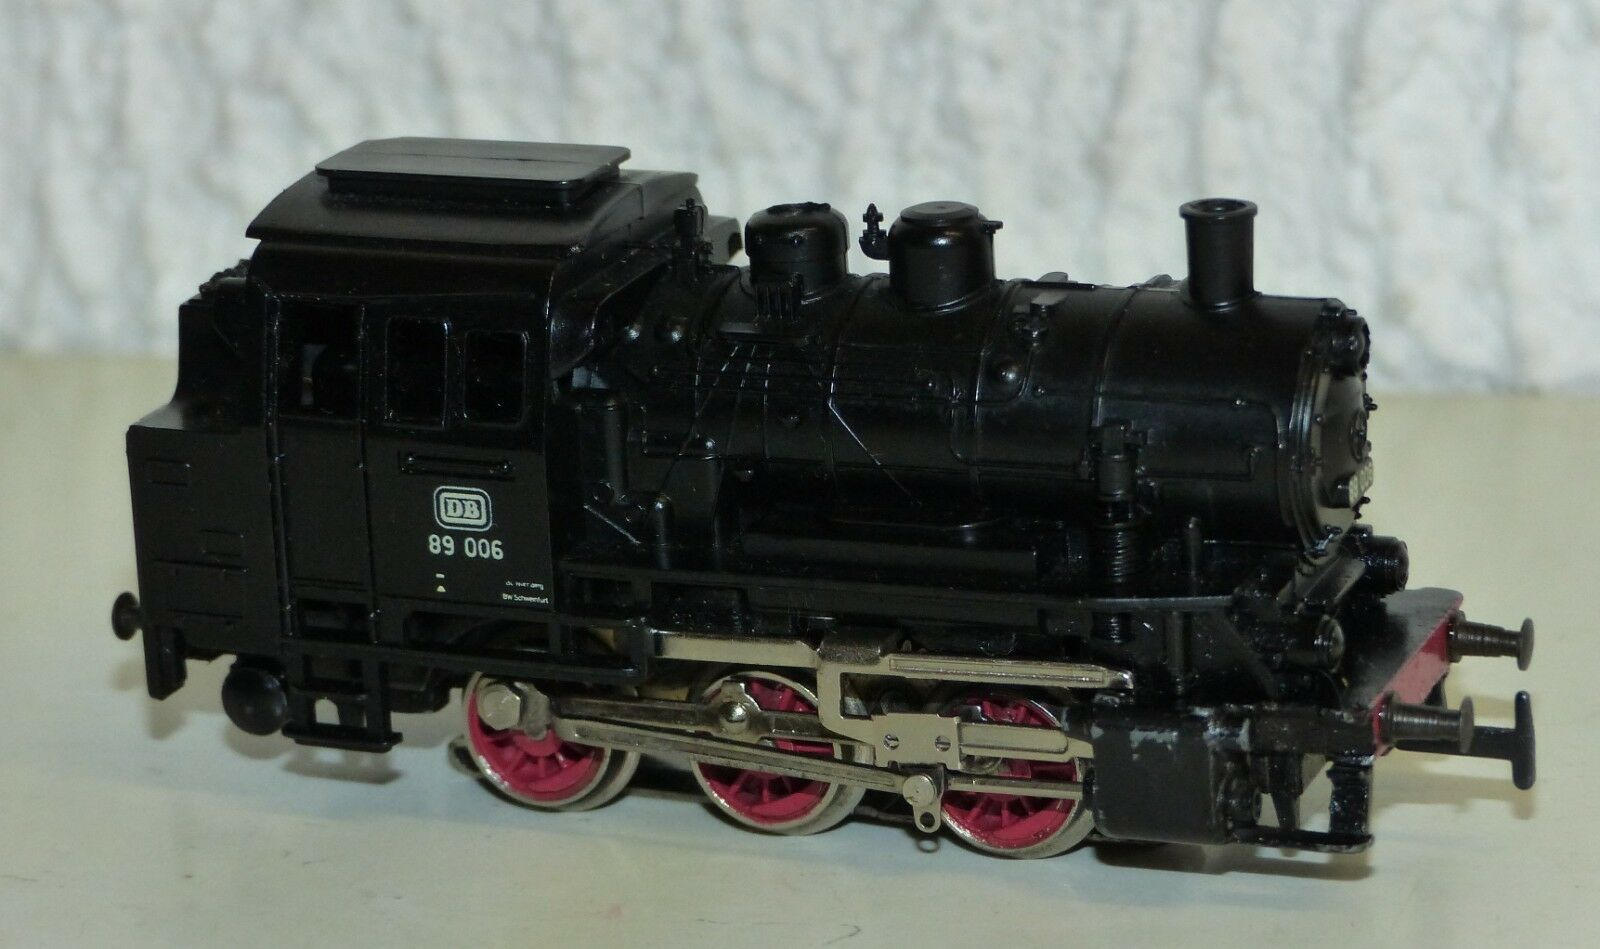 Märklin BR 89 006 Steam Locomotive Tank Locomotive h0 1 87 Good Condition